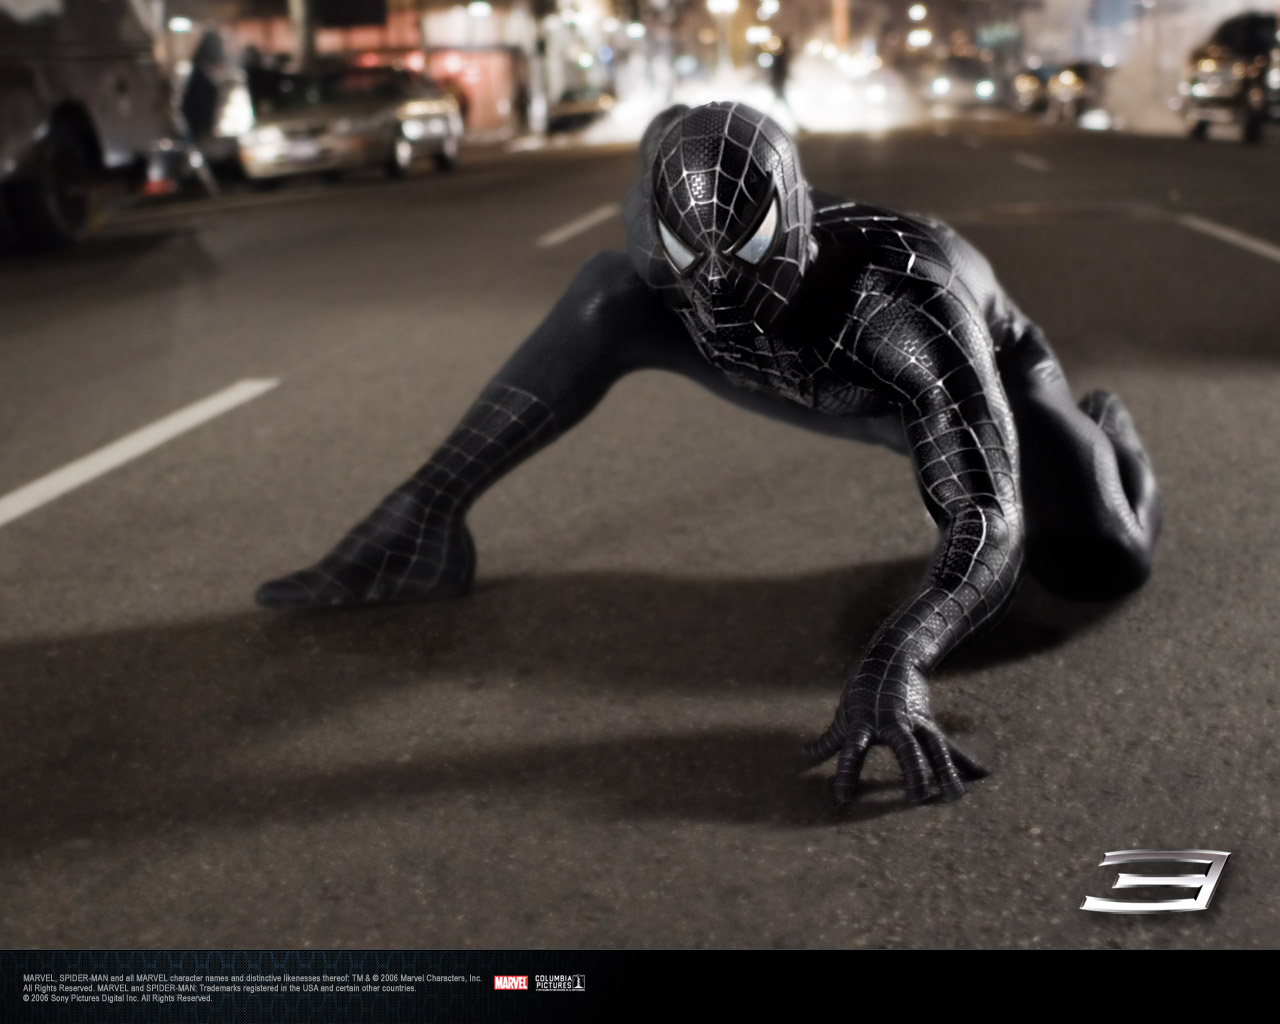 http://3.bp.blogspot.com/_f63lTE1F3ig/TDmoaXFGJ7I/AAAAAAAAAOU/dHKPMcw2OGk/s1600/Spiderman_Movie_Wallpapers_Venom.jpg